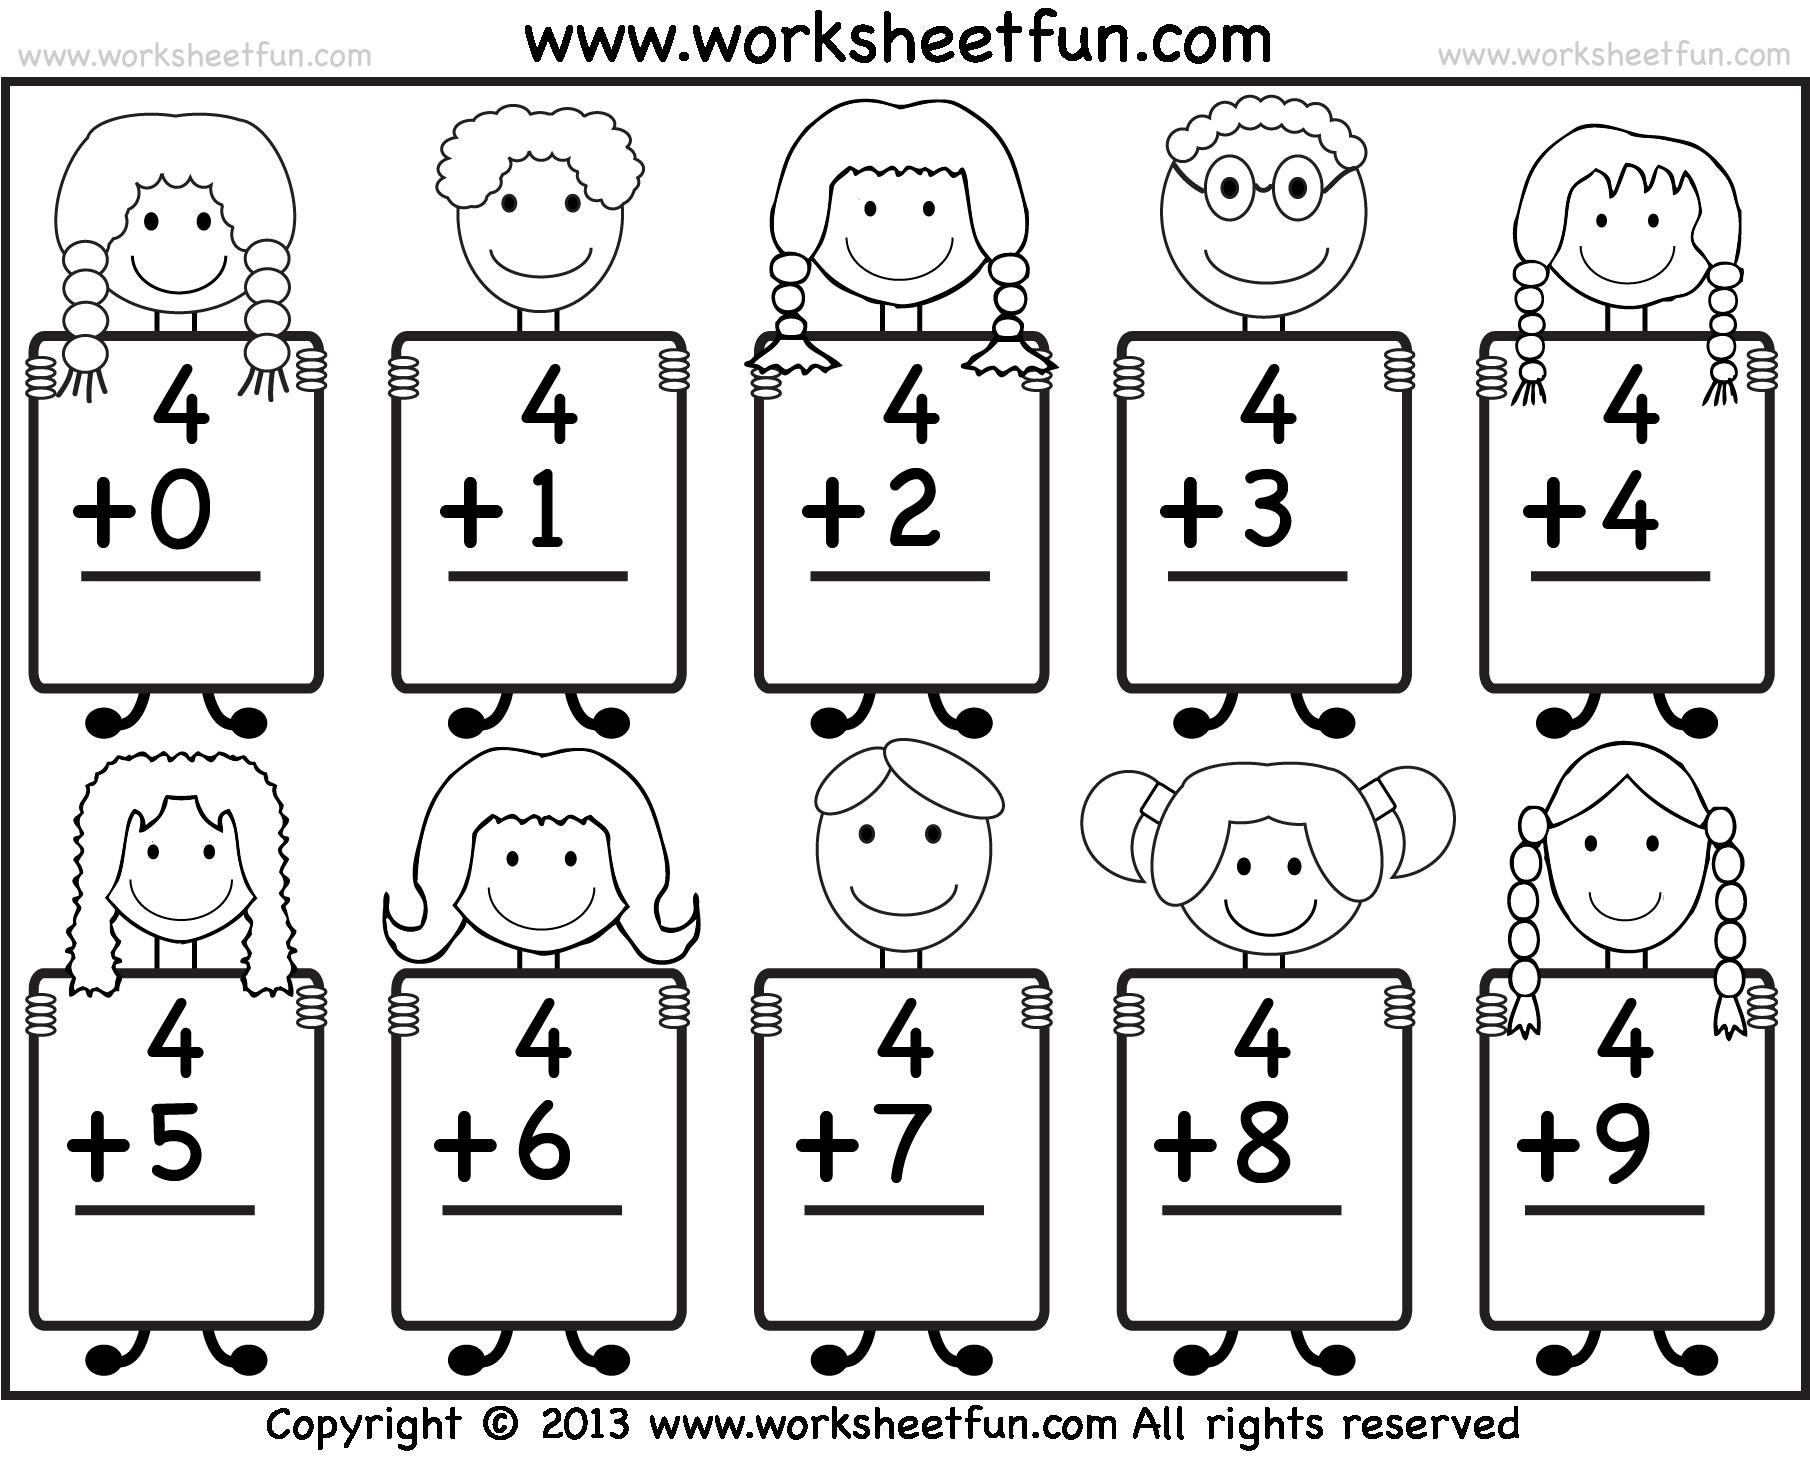 freeprintablemathworksheetsforkindergartenaddition1png – Worksheets for Kindergarten Maths